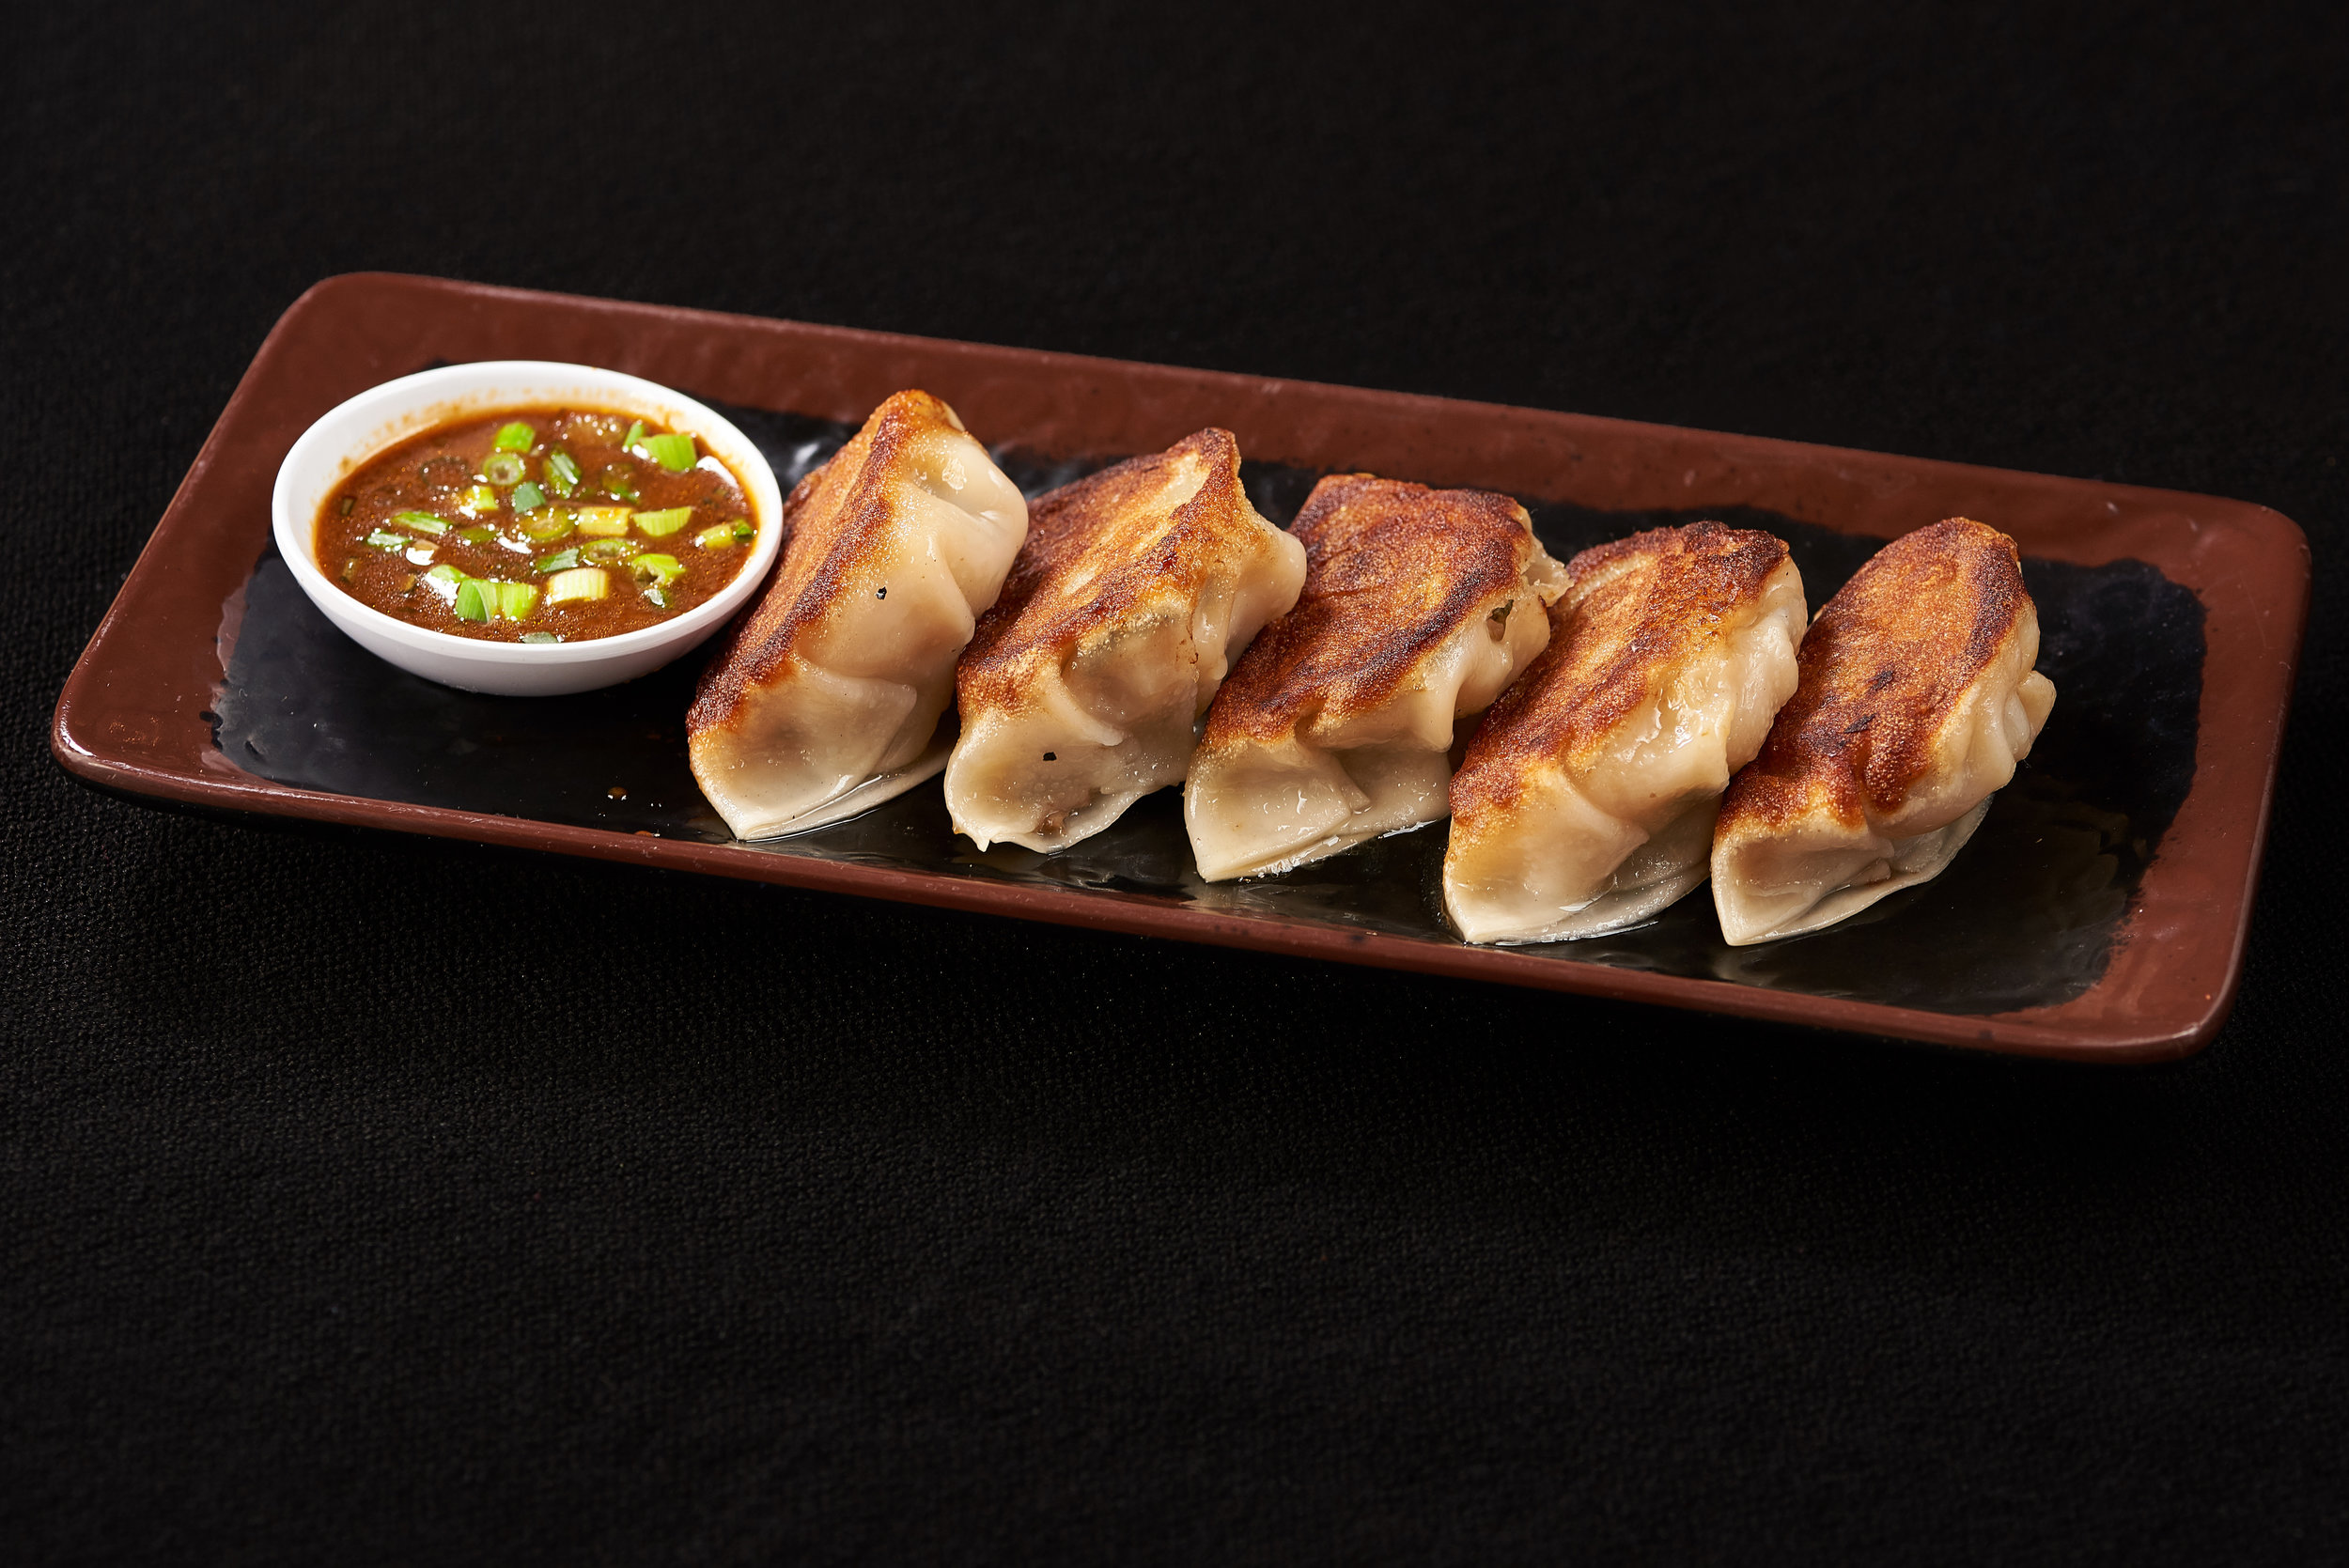 Professional food photo of pan fried dumplings. Commercial photography